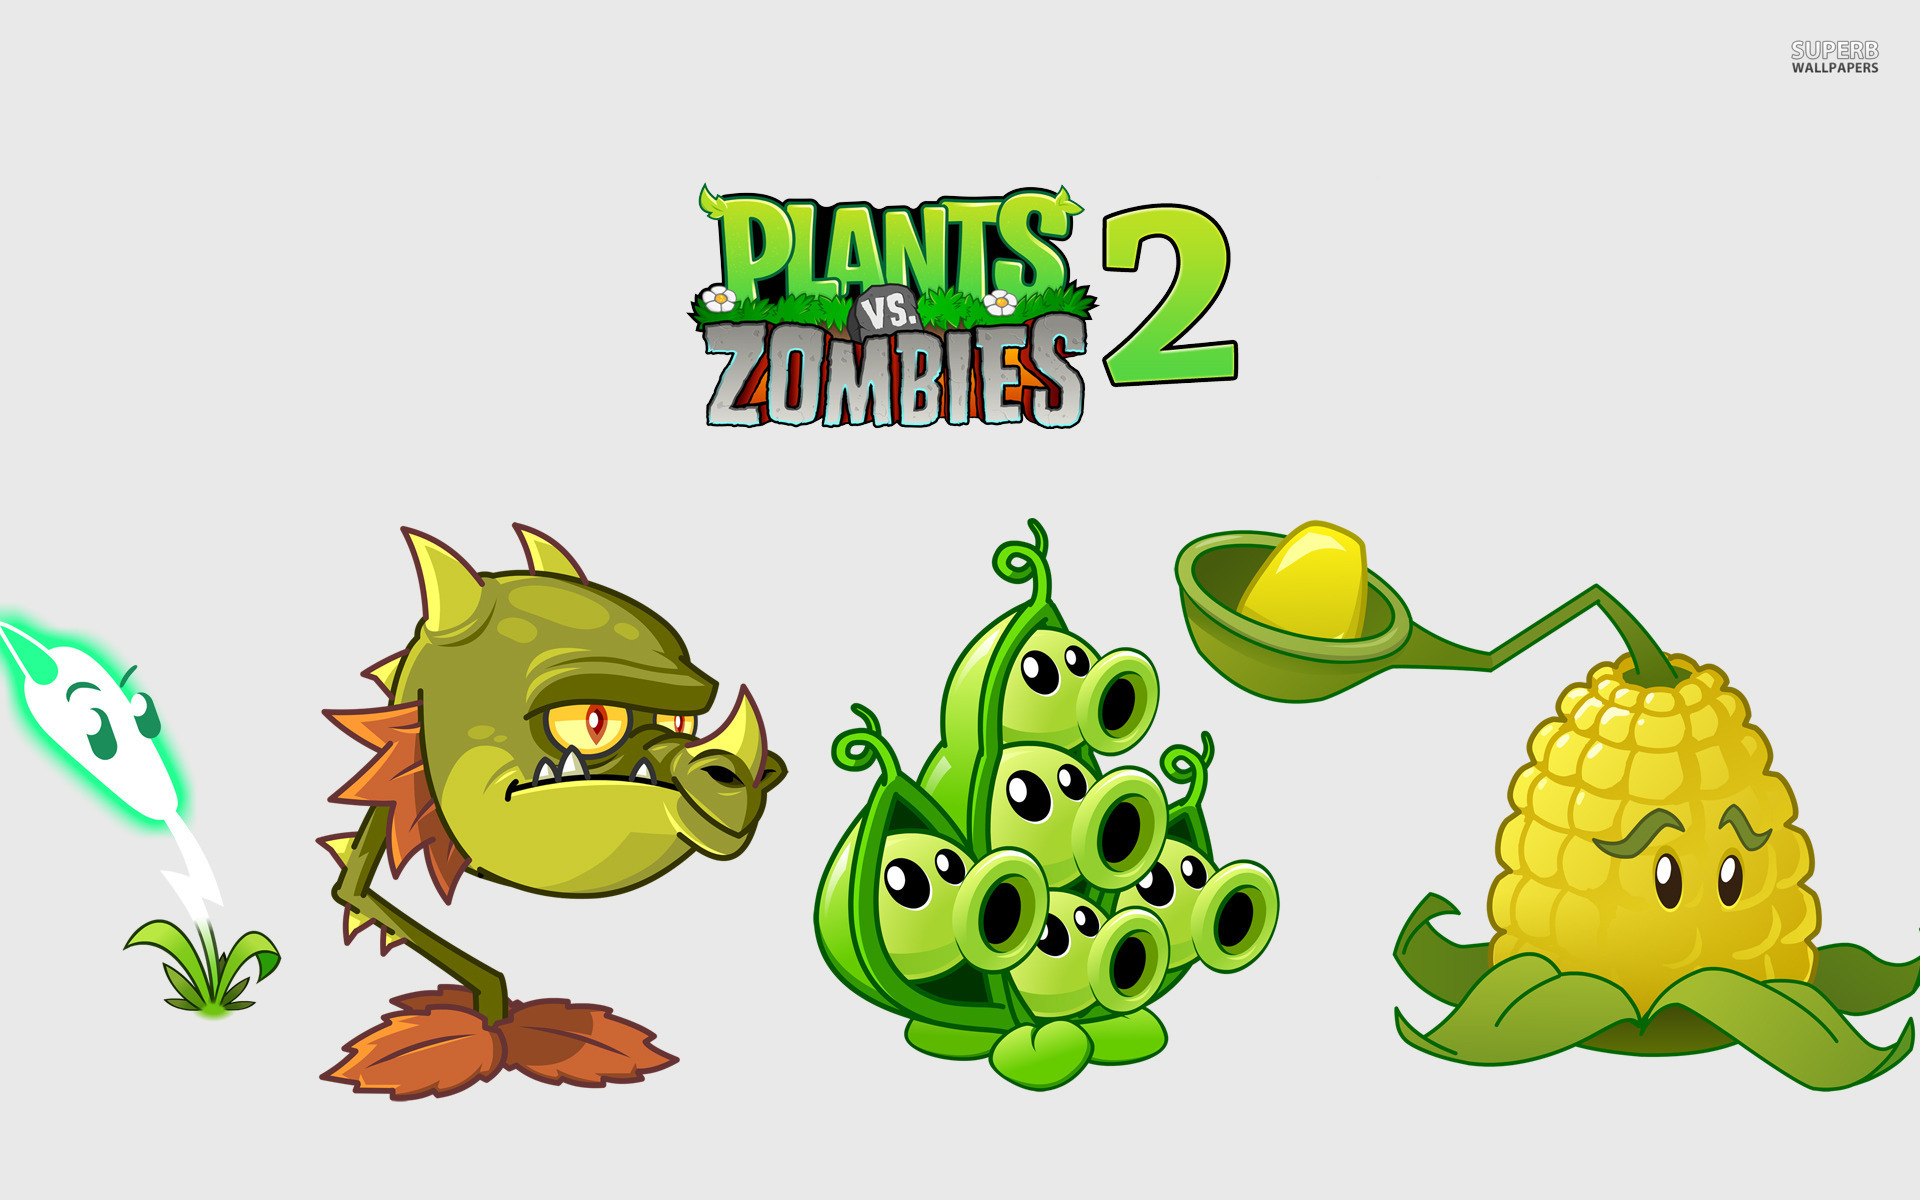 plants-vs-zombies-2-it-s-about-time-21636-1920x1200